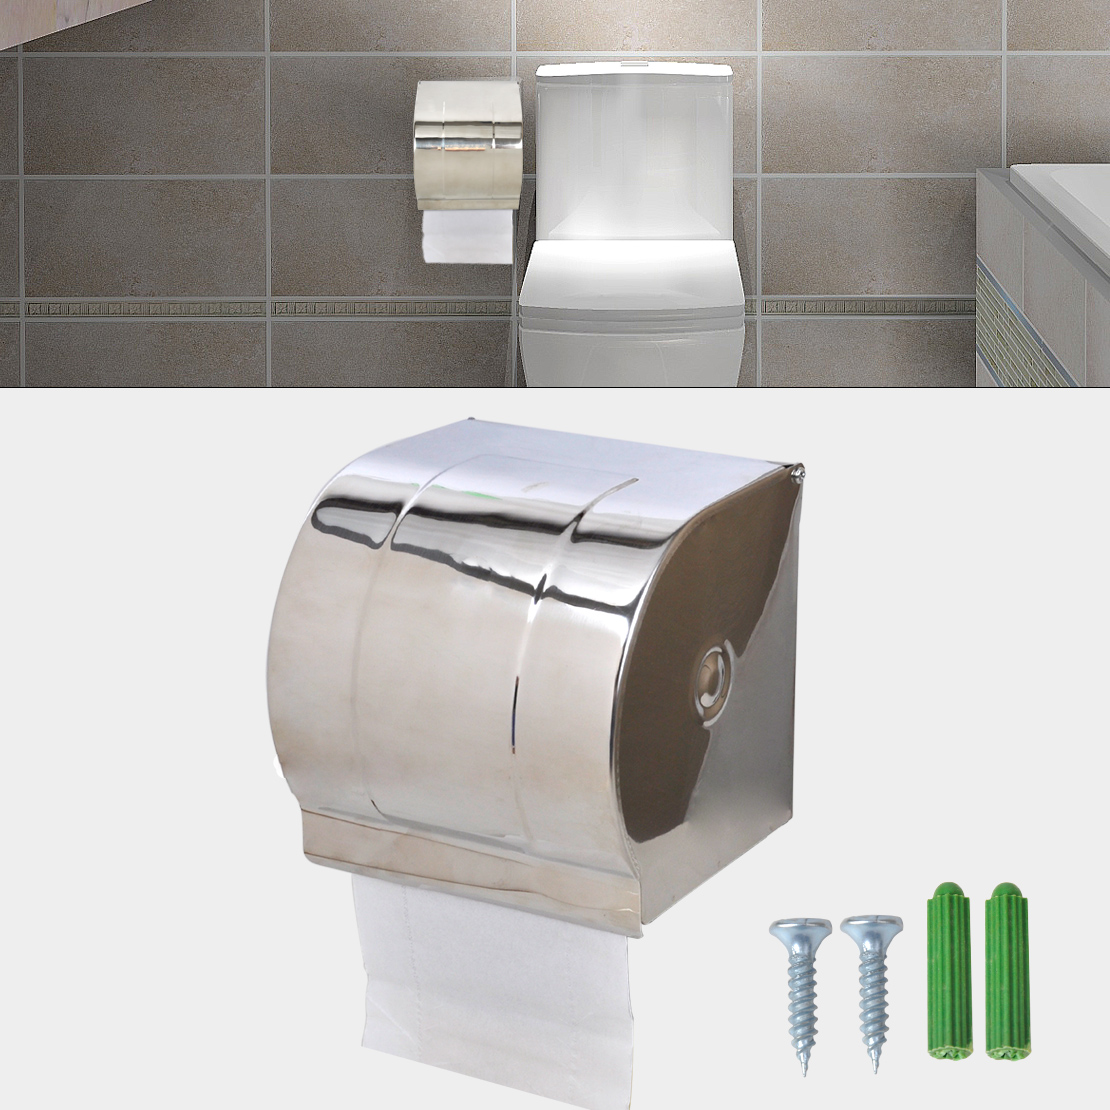 Stainless steel waterproof toilet paper holder roll tissue box wall mounted ebay - Stainless steel toilet paper dispenser ...